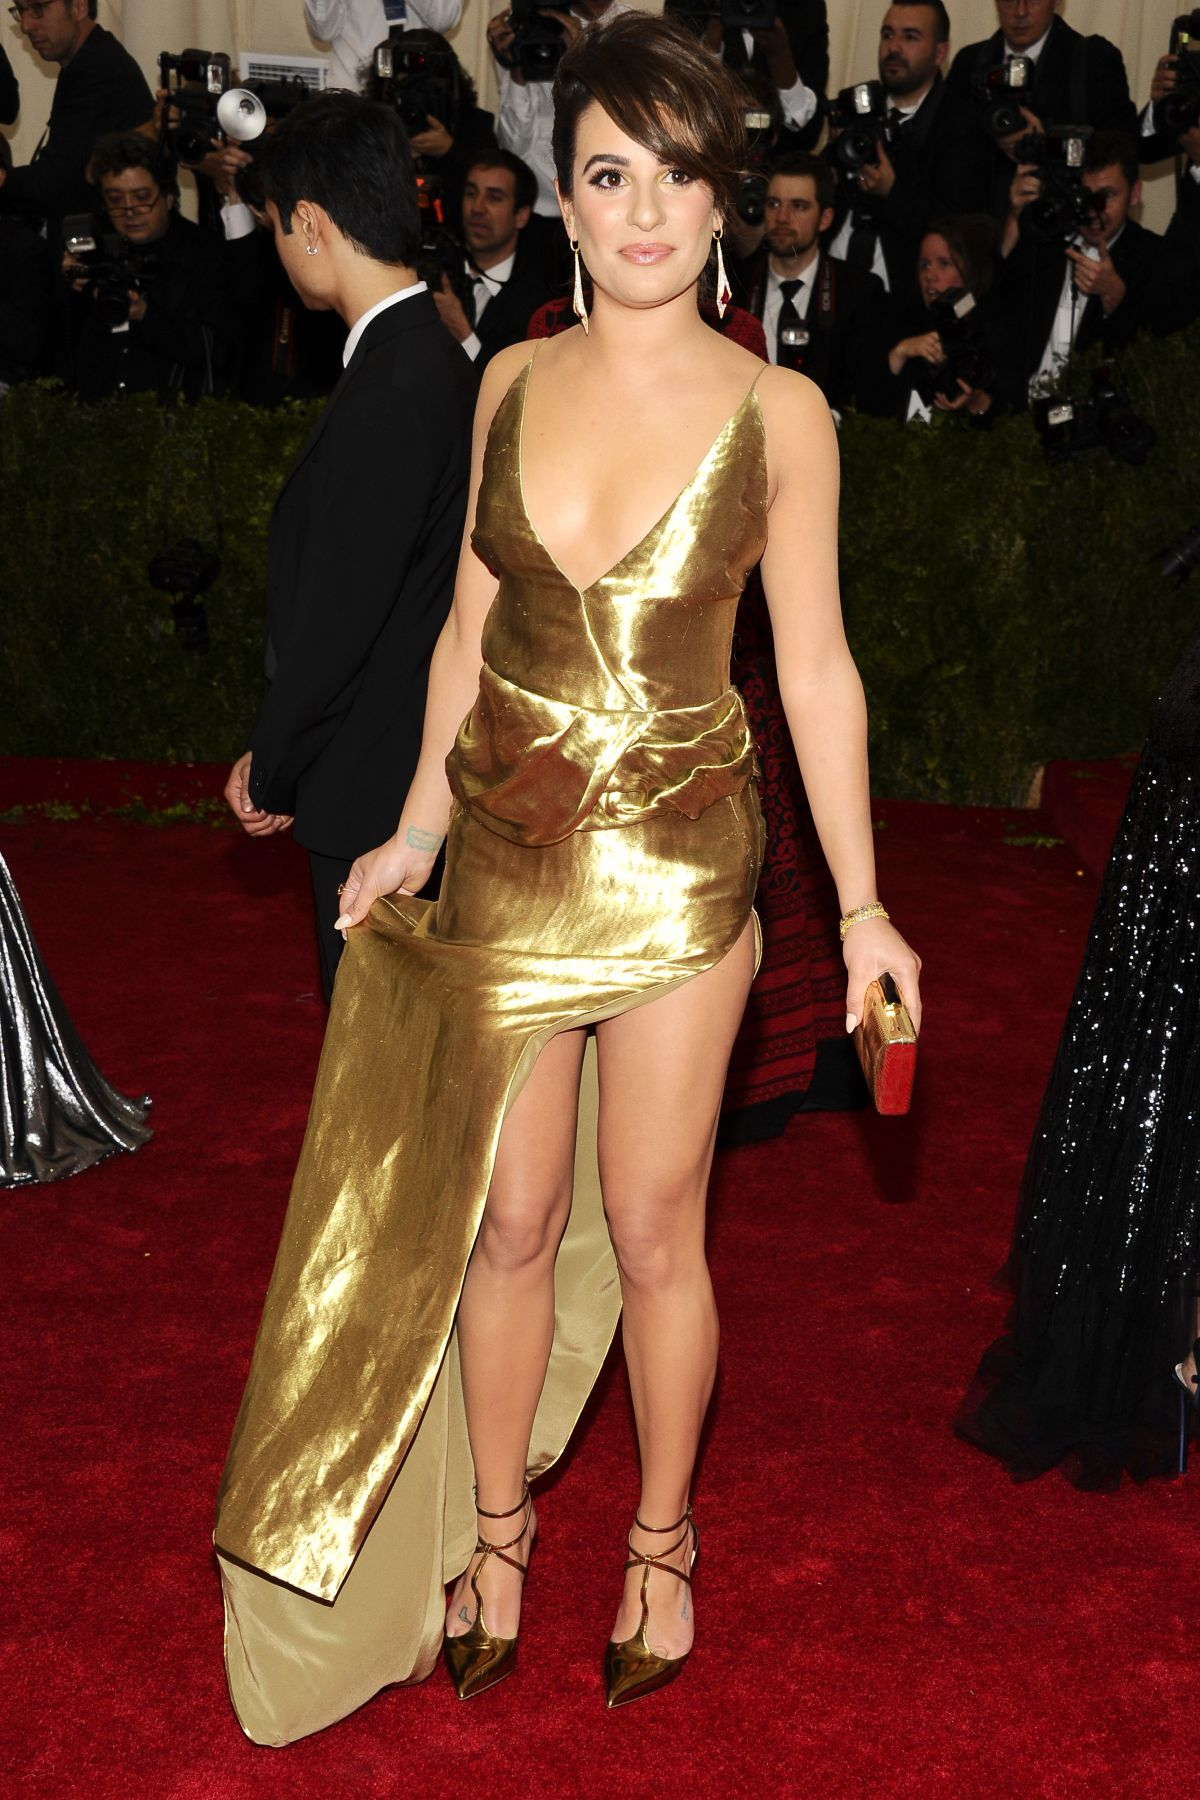 https://i2.wp.com/www.hawtcelebs.com/wp-content/uploads/2014/05/lea-michele-at-met-gala-2014-in-new-york_1.jpg